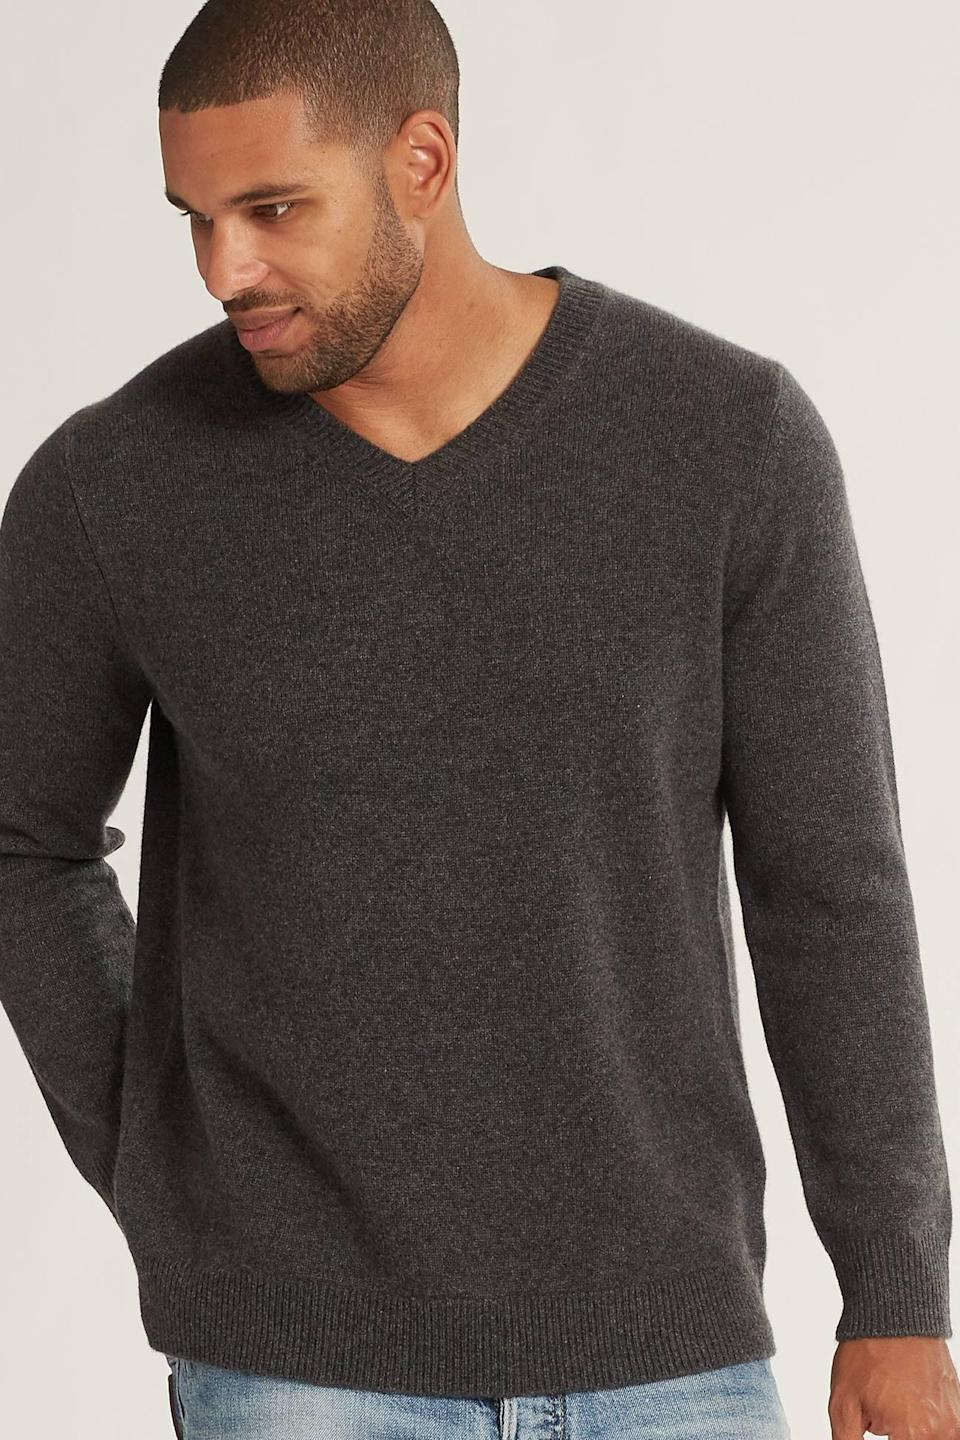 Naked Cashmere Scott Sweater, best cashmere sweaters